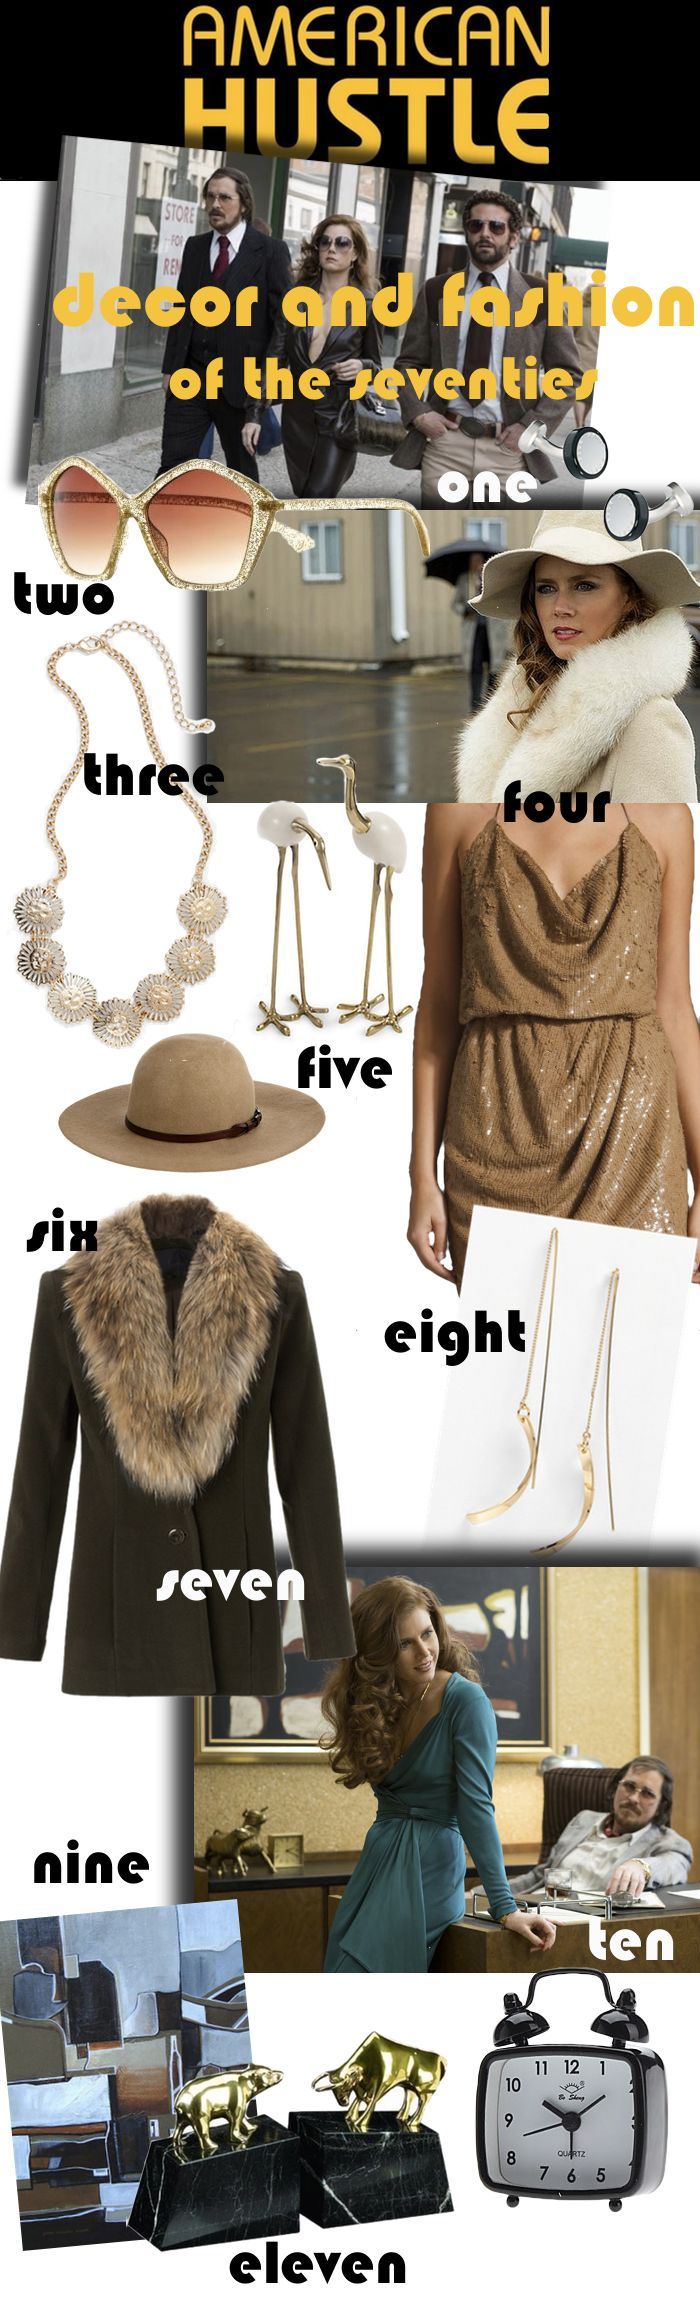 Inspired by Costume Design and Set Design of American Hustle featuring Christian Bale, Jennifer Lawrence, Amy Adams!